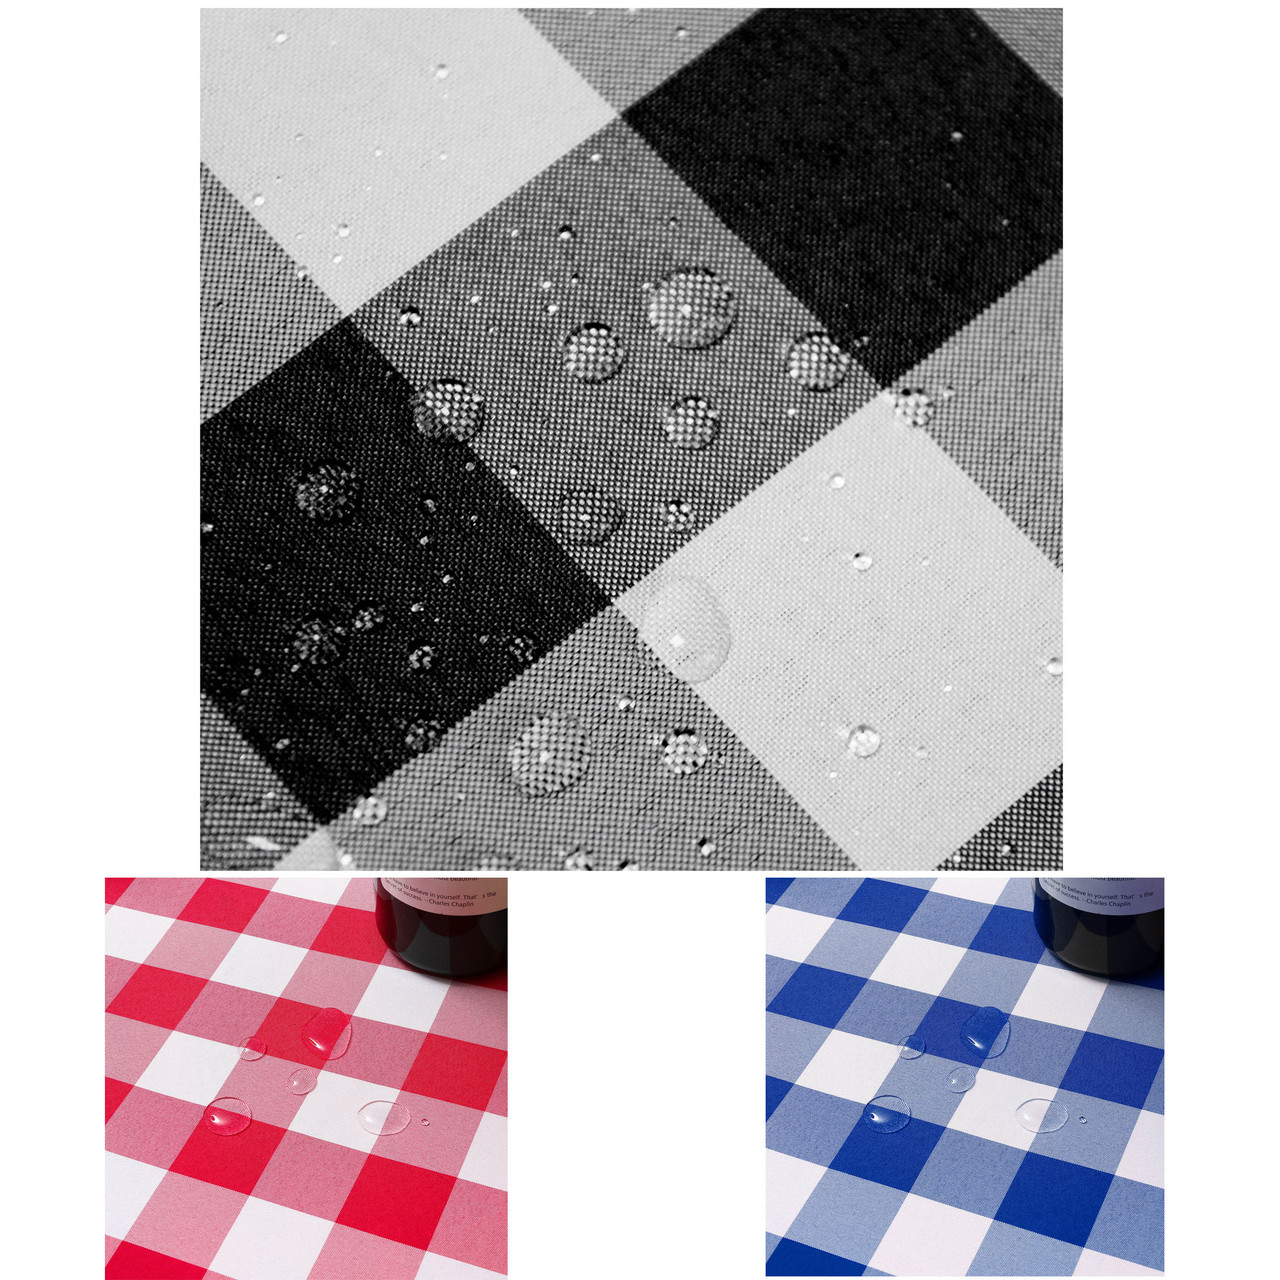 Assorted Colors Plaid /& Tartan Stain Resistant /& Spill-Proof Fabric Tablecloth